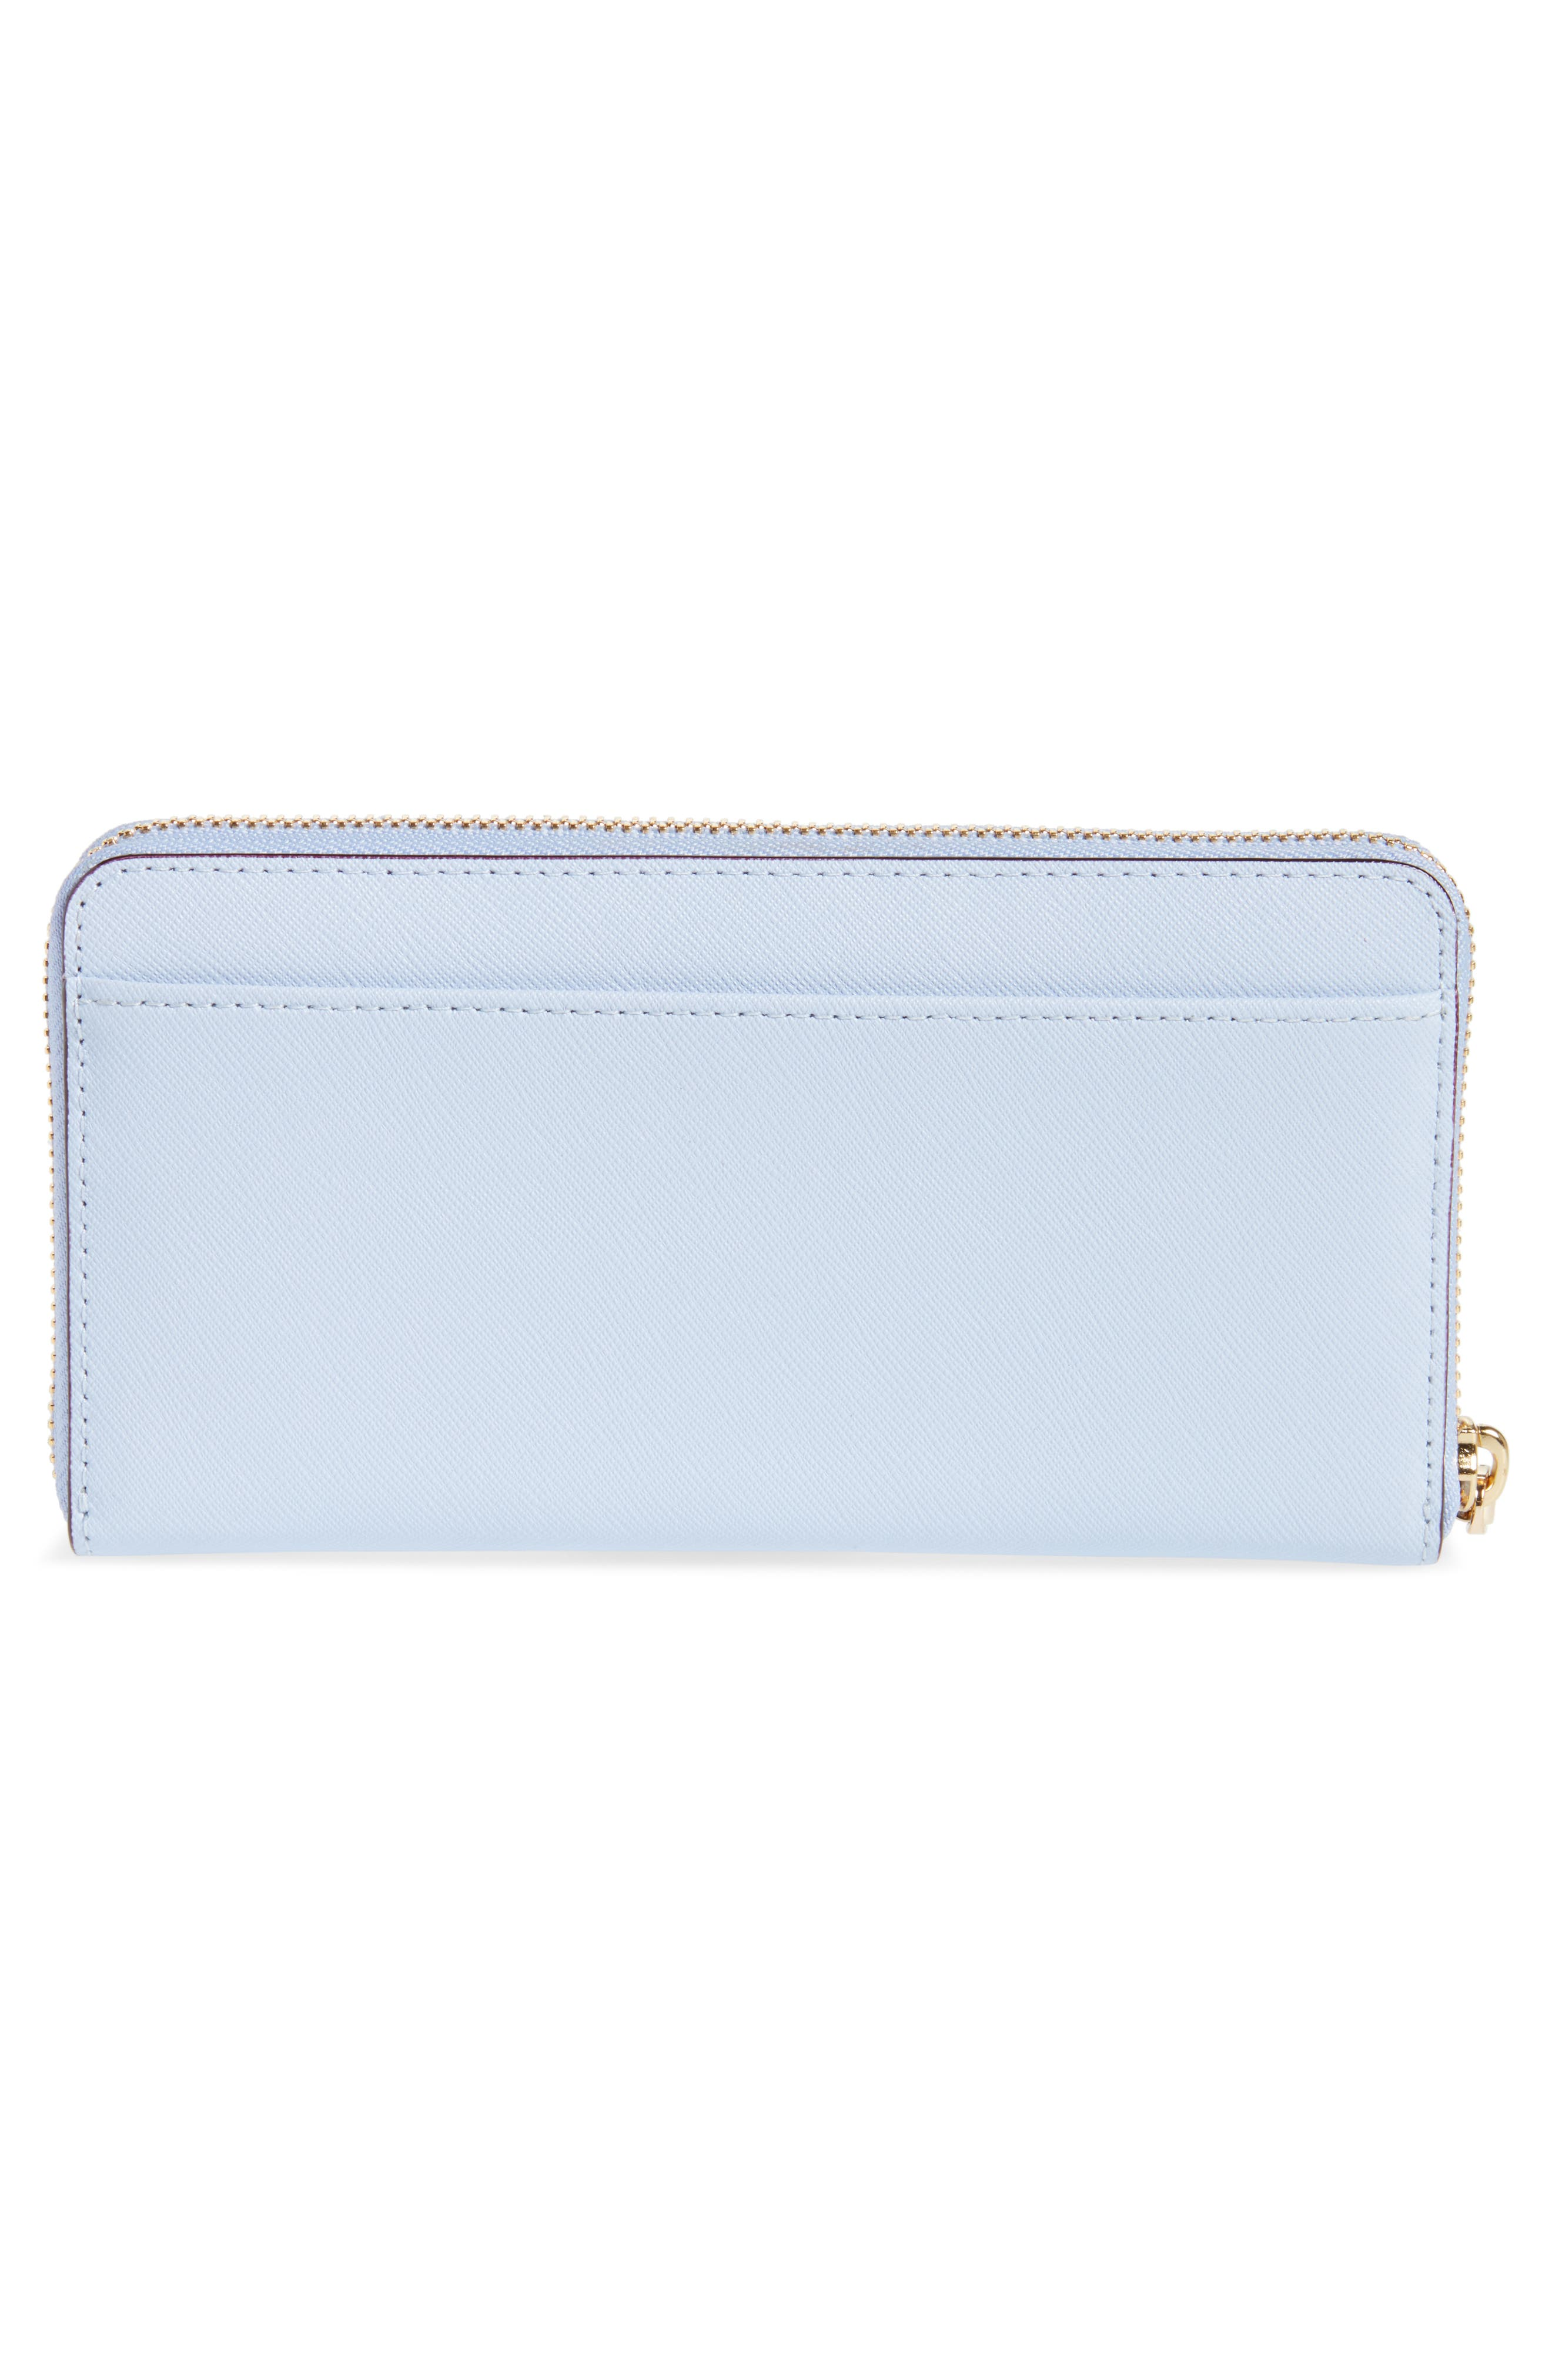 'cameron street - lacey' leather wallet,                             Alternate thumbnail 4, color,                             Morning Dawn